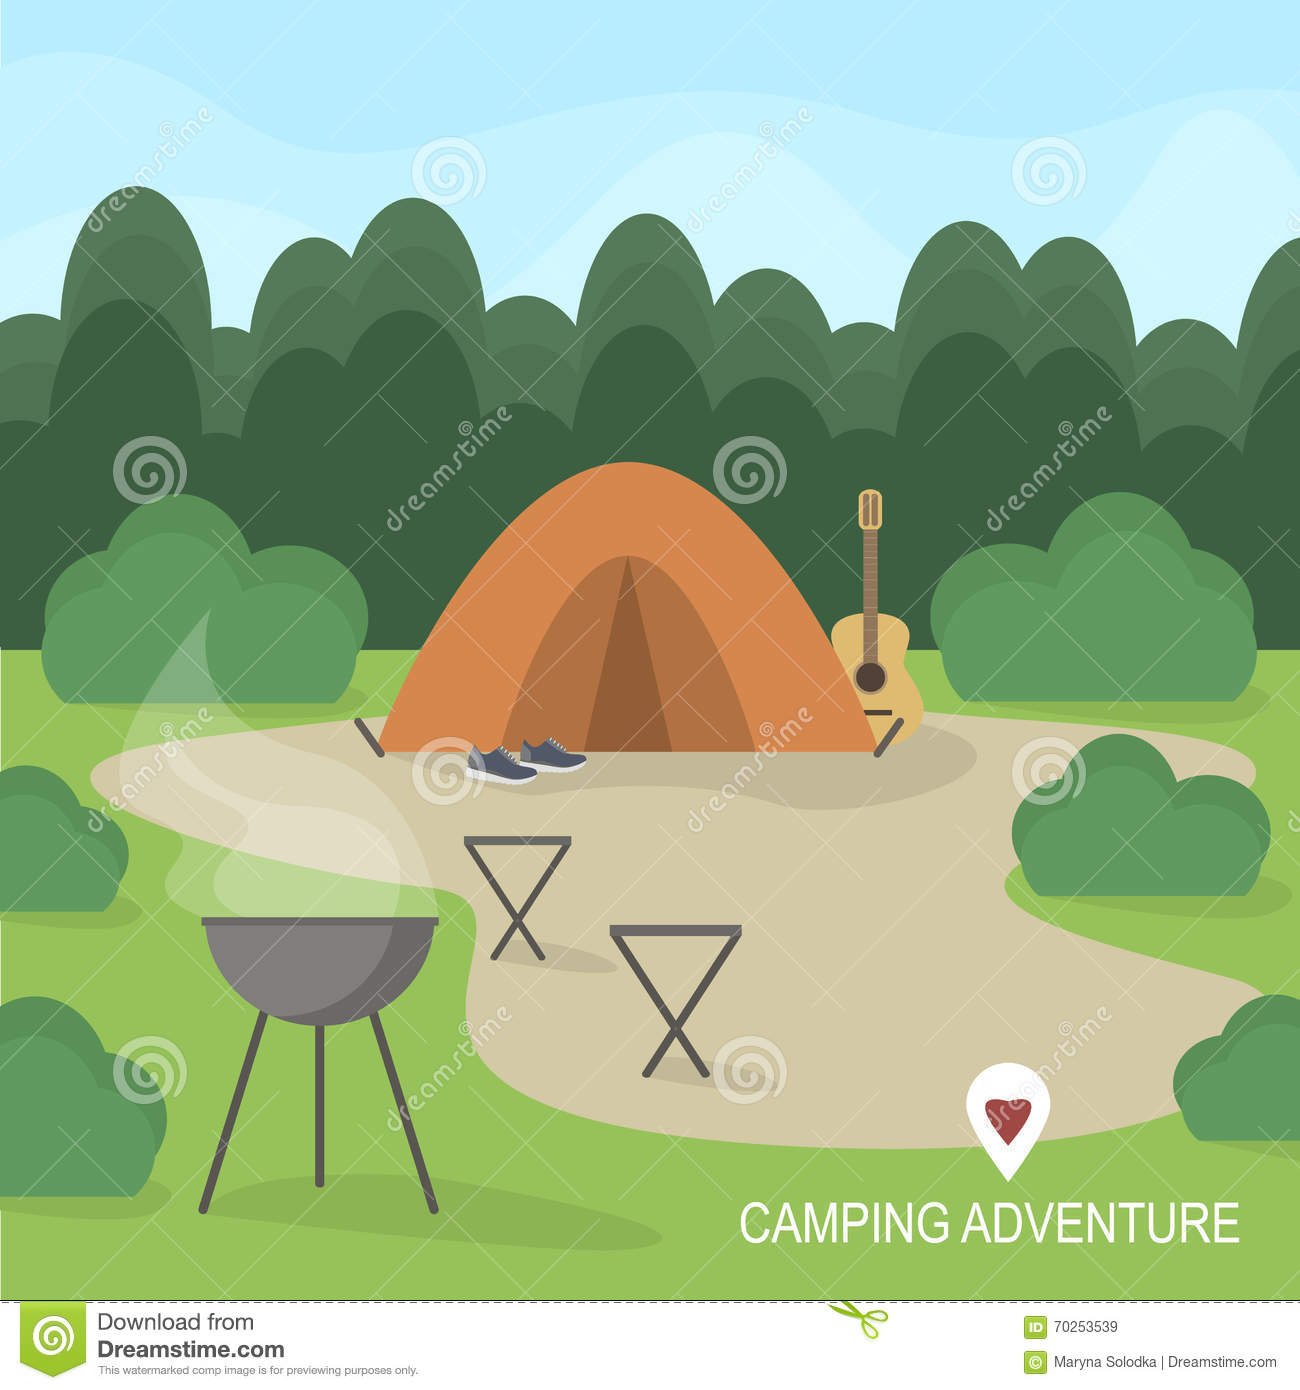 Hiking and outdoor recreation concept with flat camping travel icons. Vector illustration